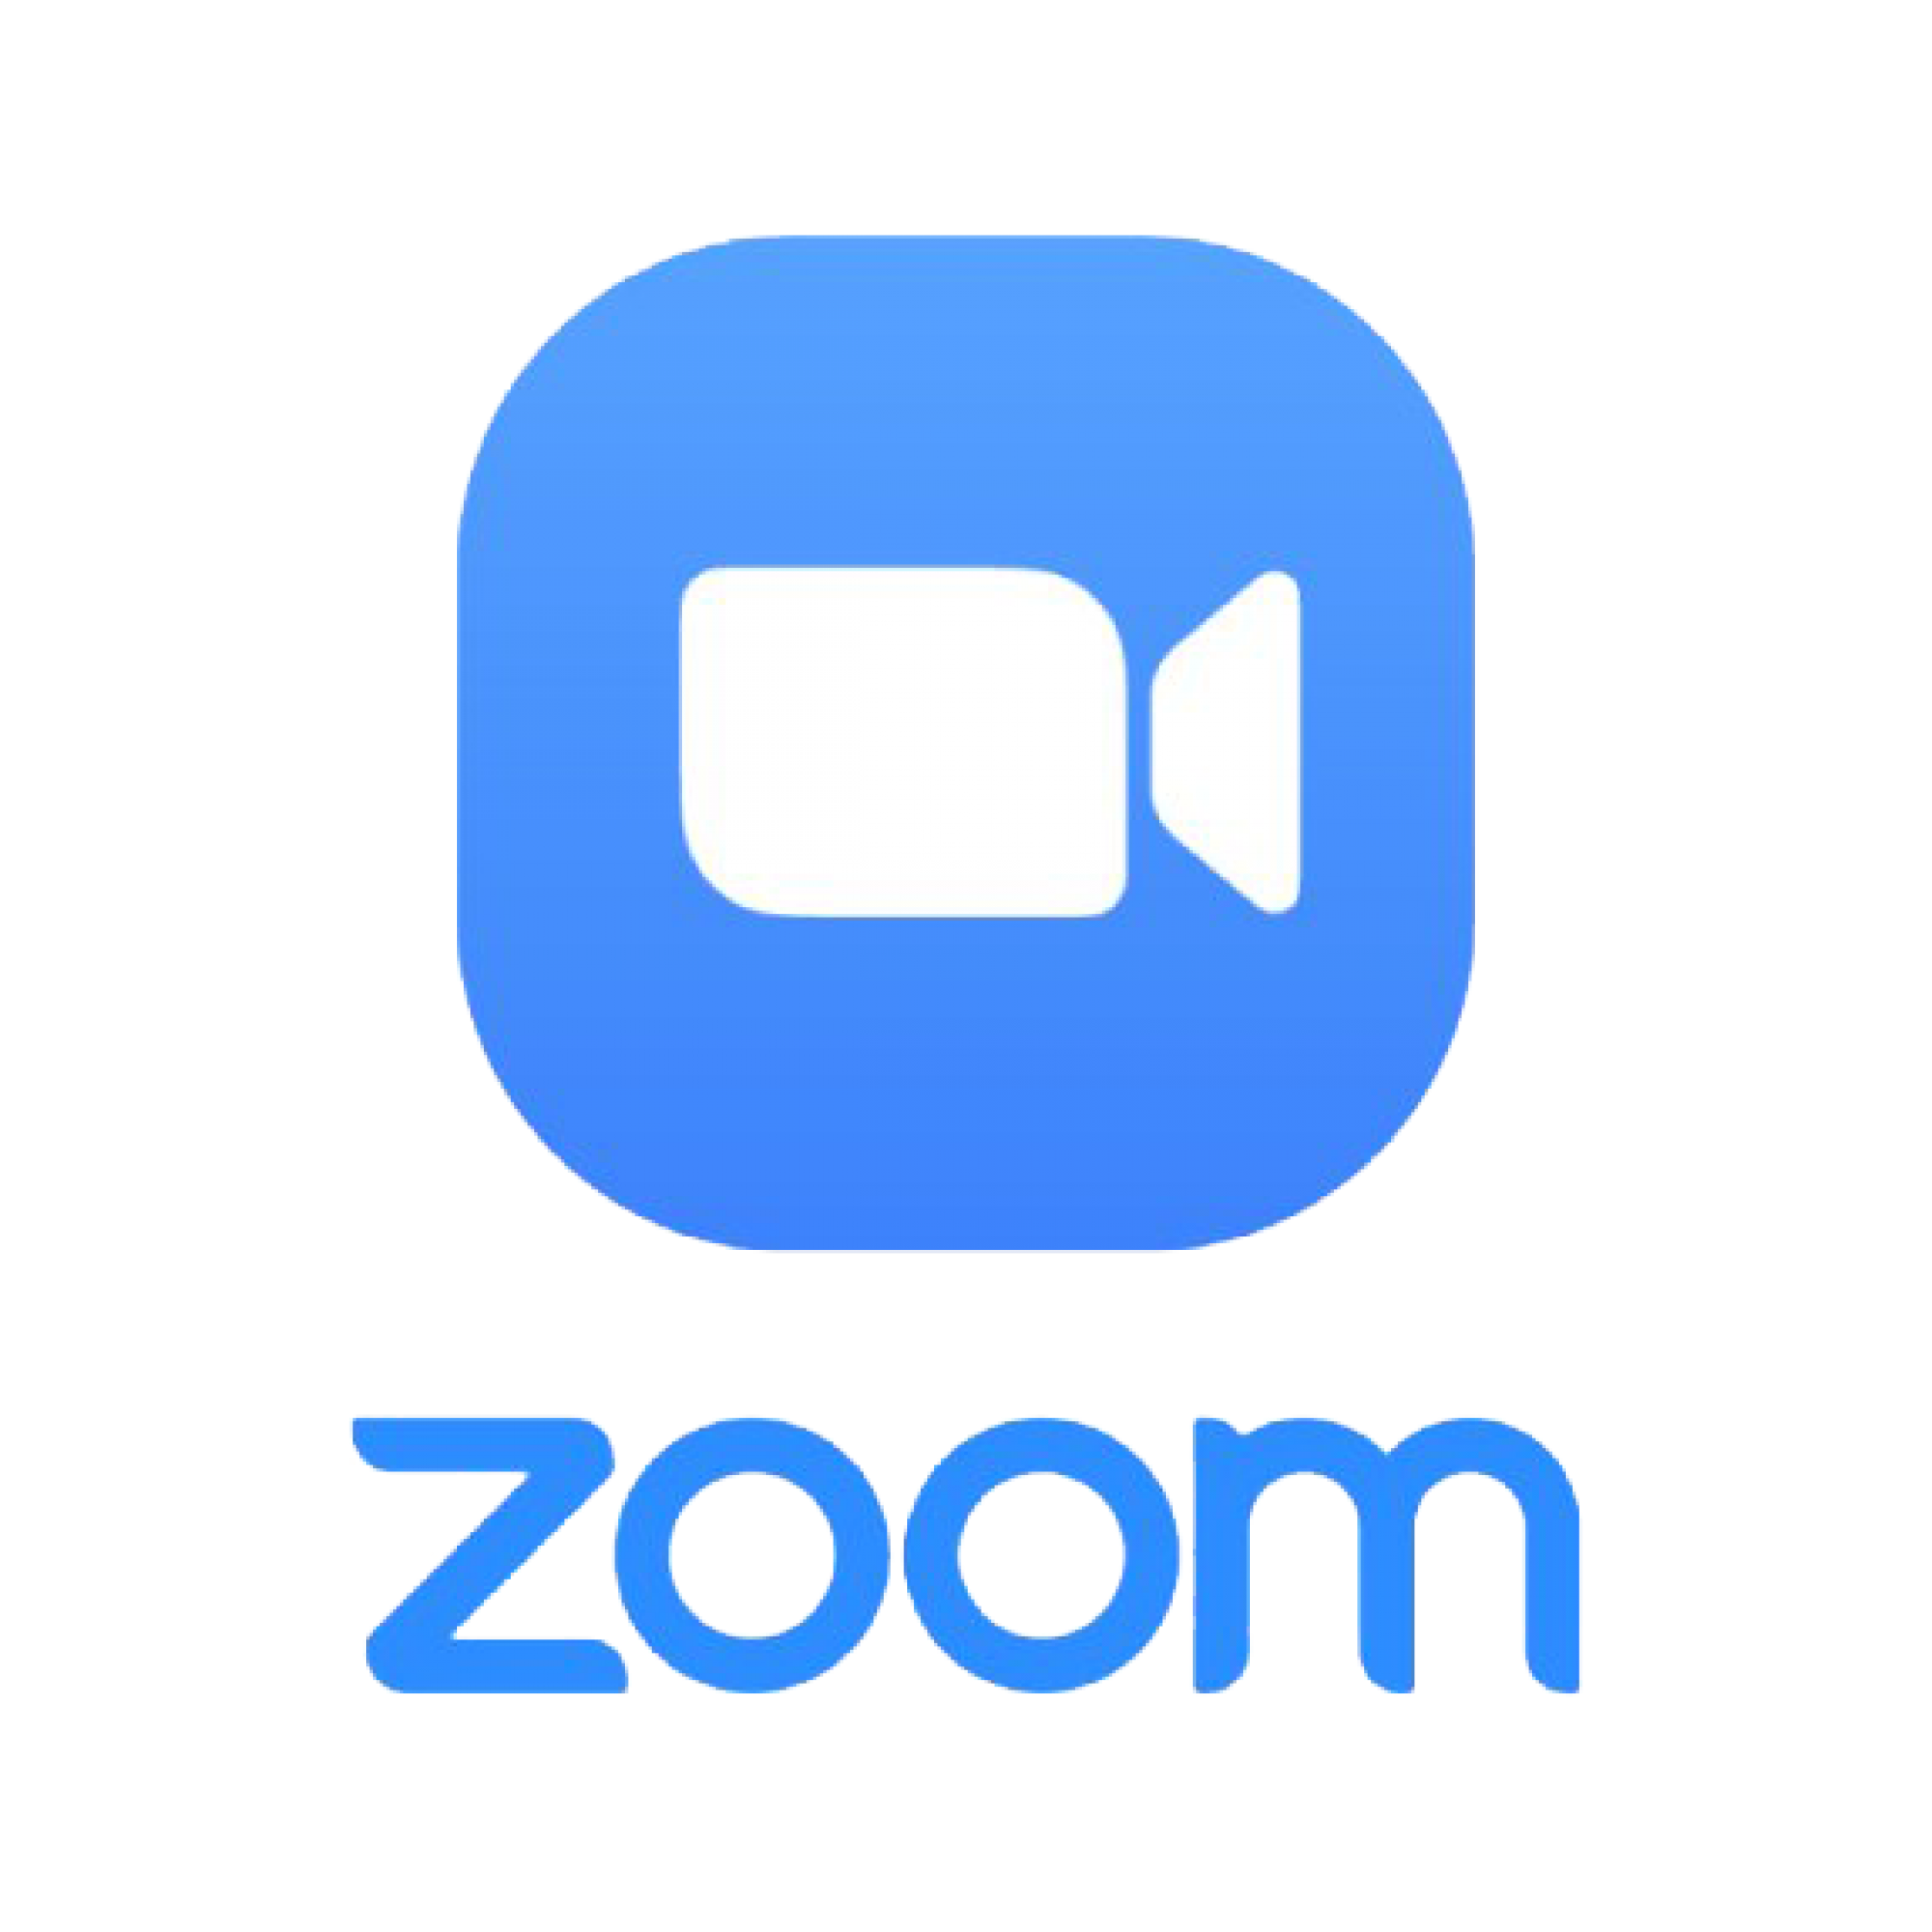 Zoom-Logo-PNG-Photo